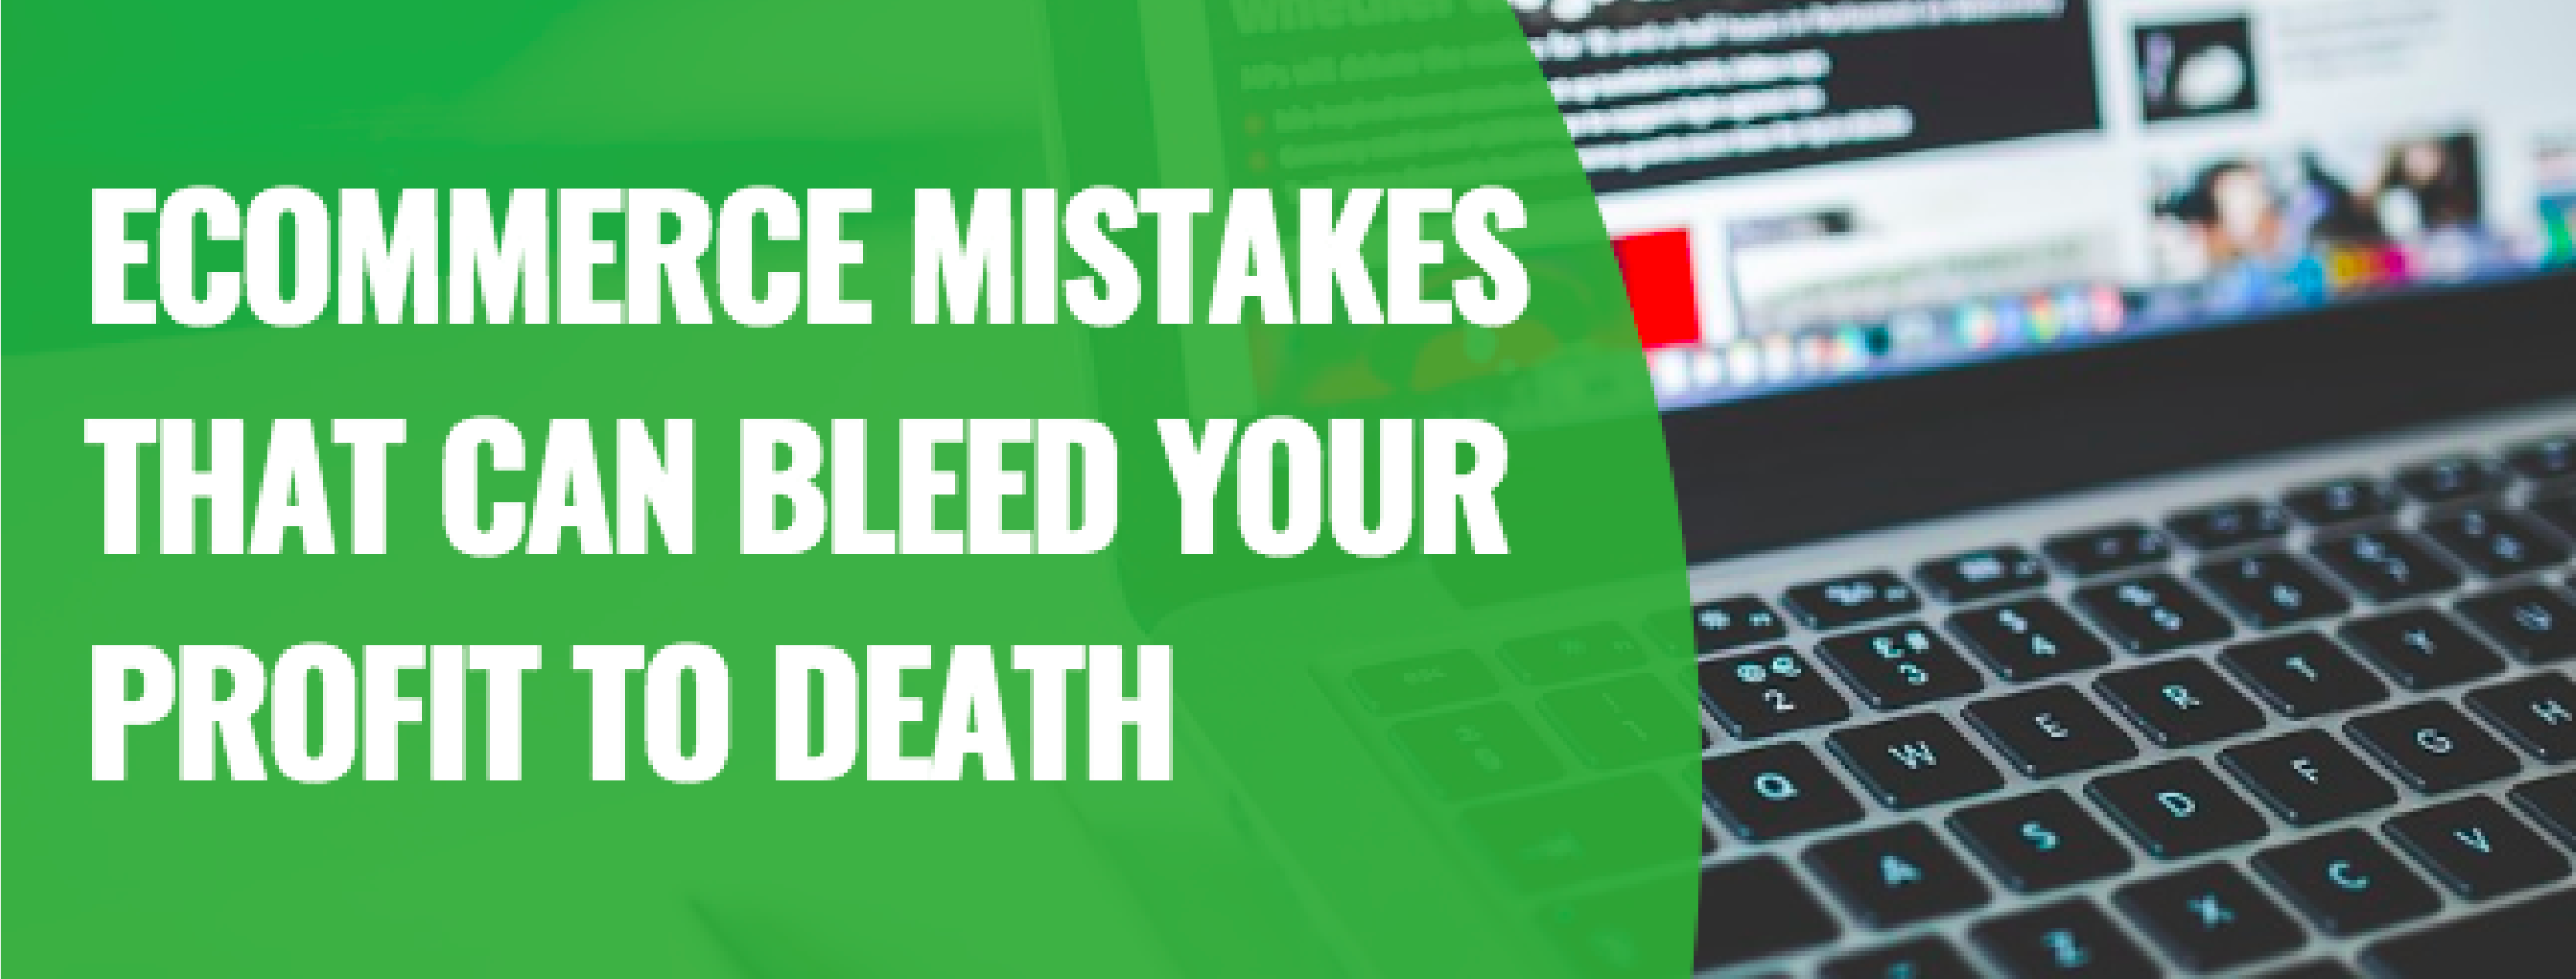 9 Ecommerce Mistakes That Can Bleed Your Profit To Death